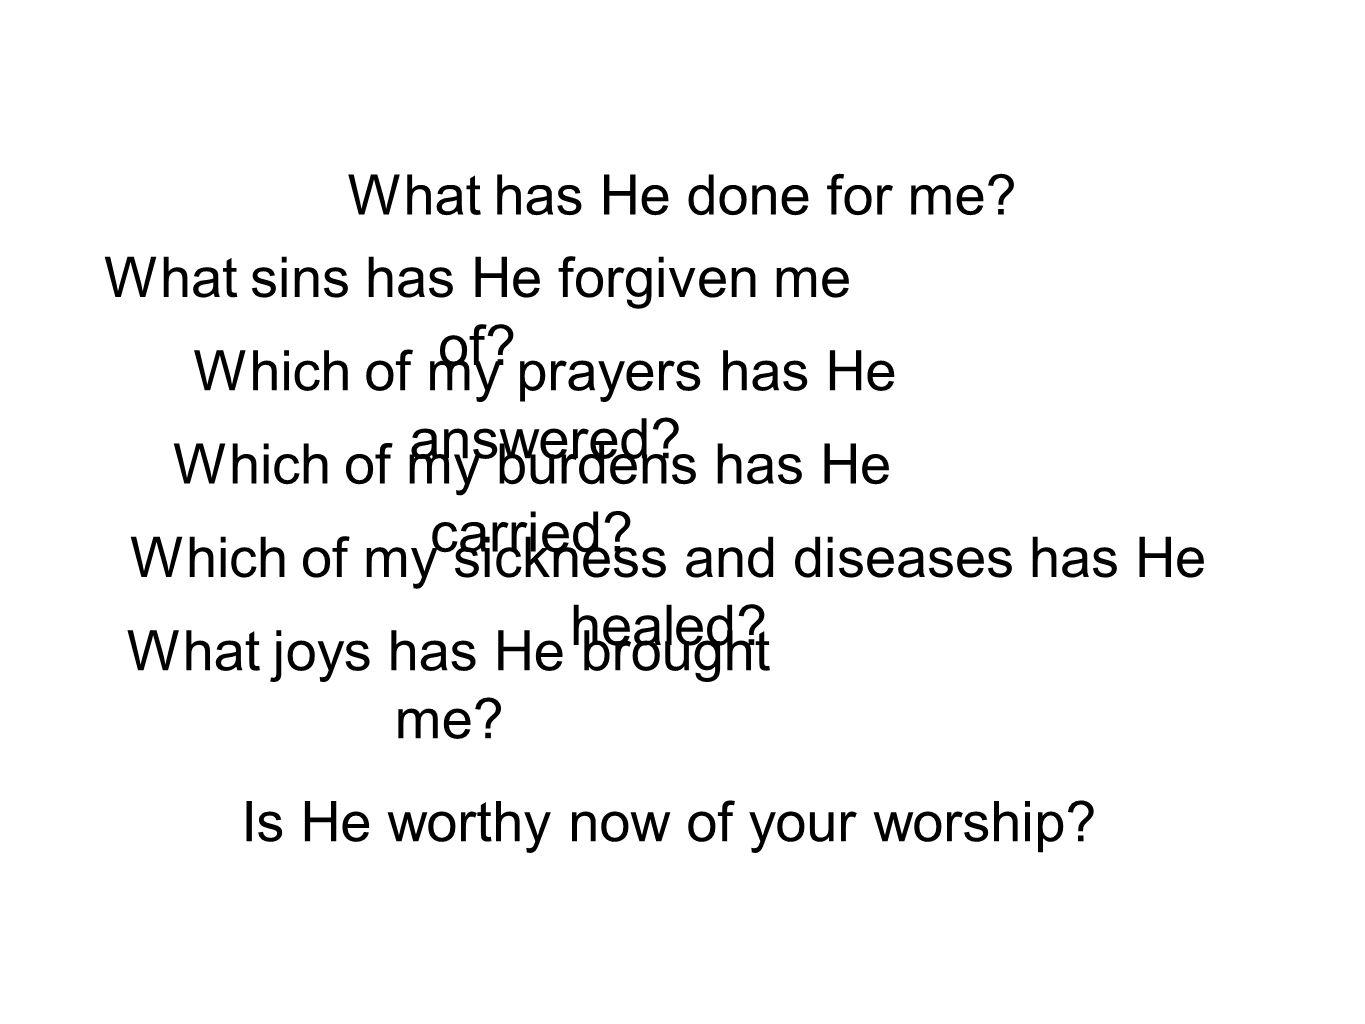 What has He done for me? What sins has He forgiven me of? Which of my prayers has He answered? Which of my burdens has He carried? Which of my sicknes